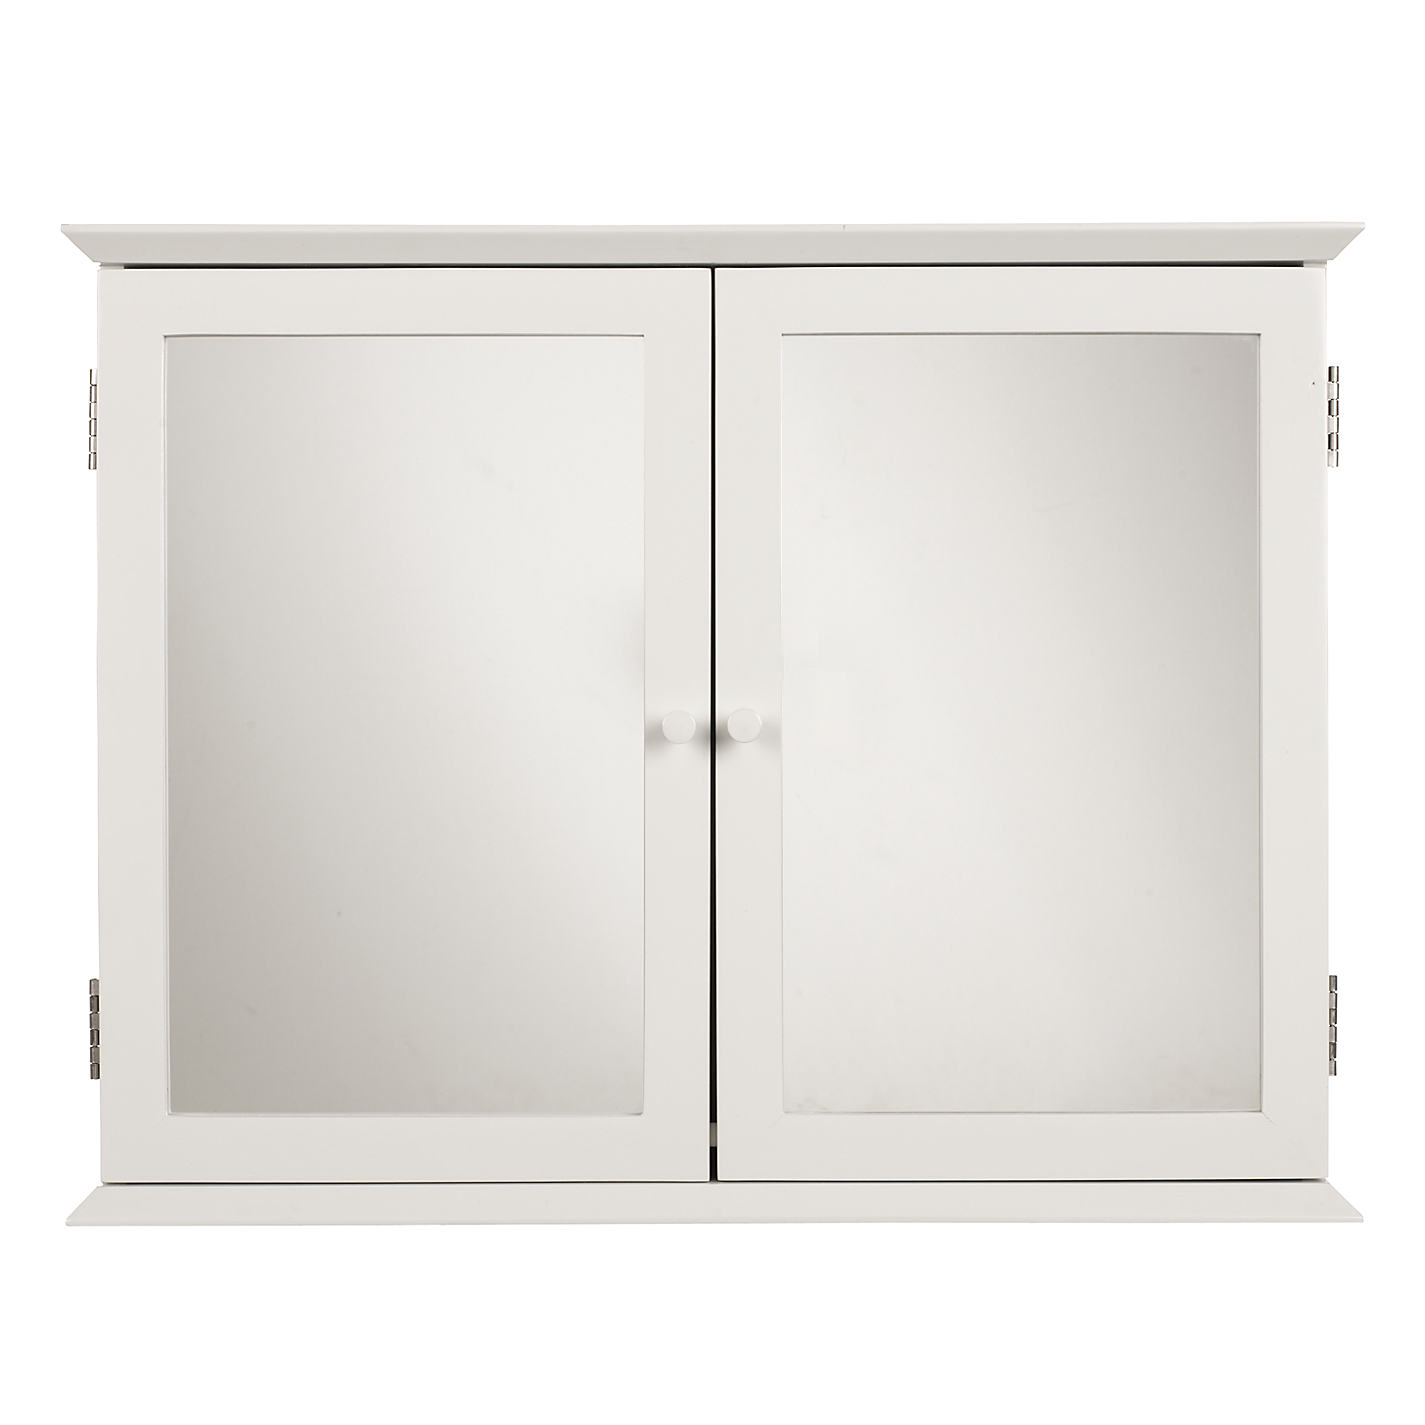 buy john lewis st ives double mirrored bathroom cabinet online at johnlewiscom - Bathroom Cabinets John Lewis